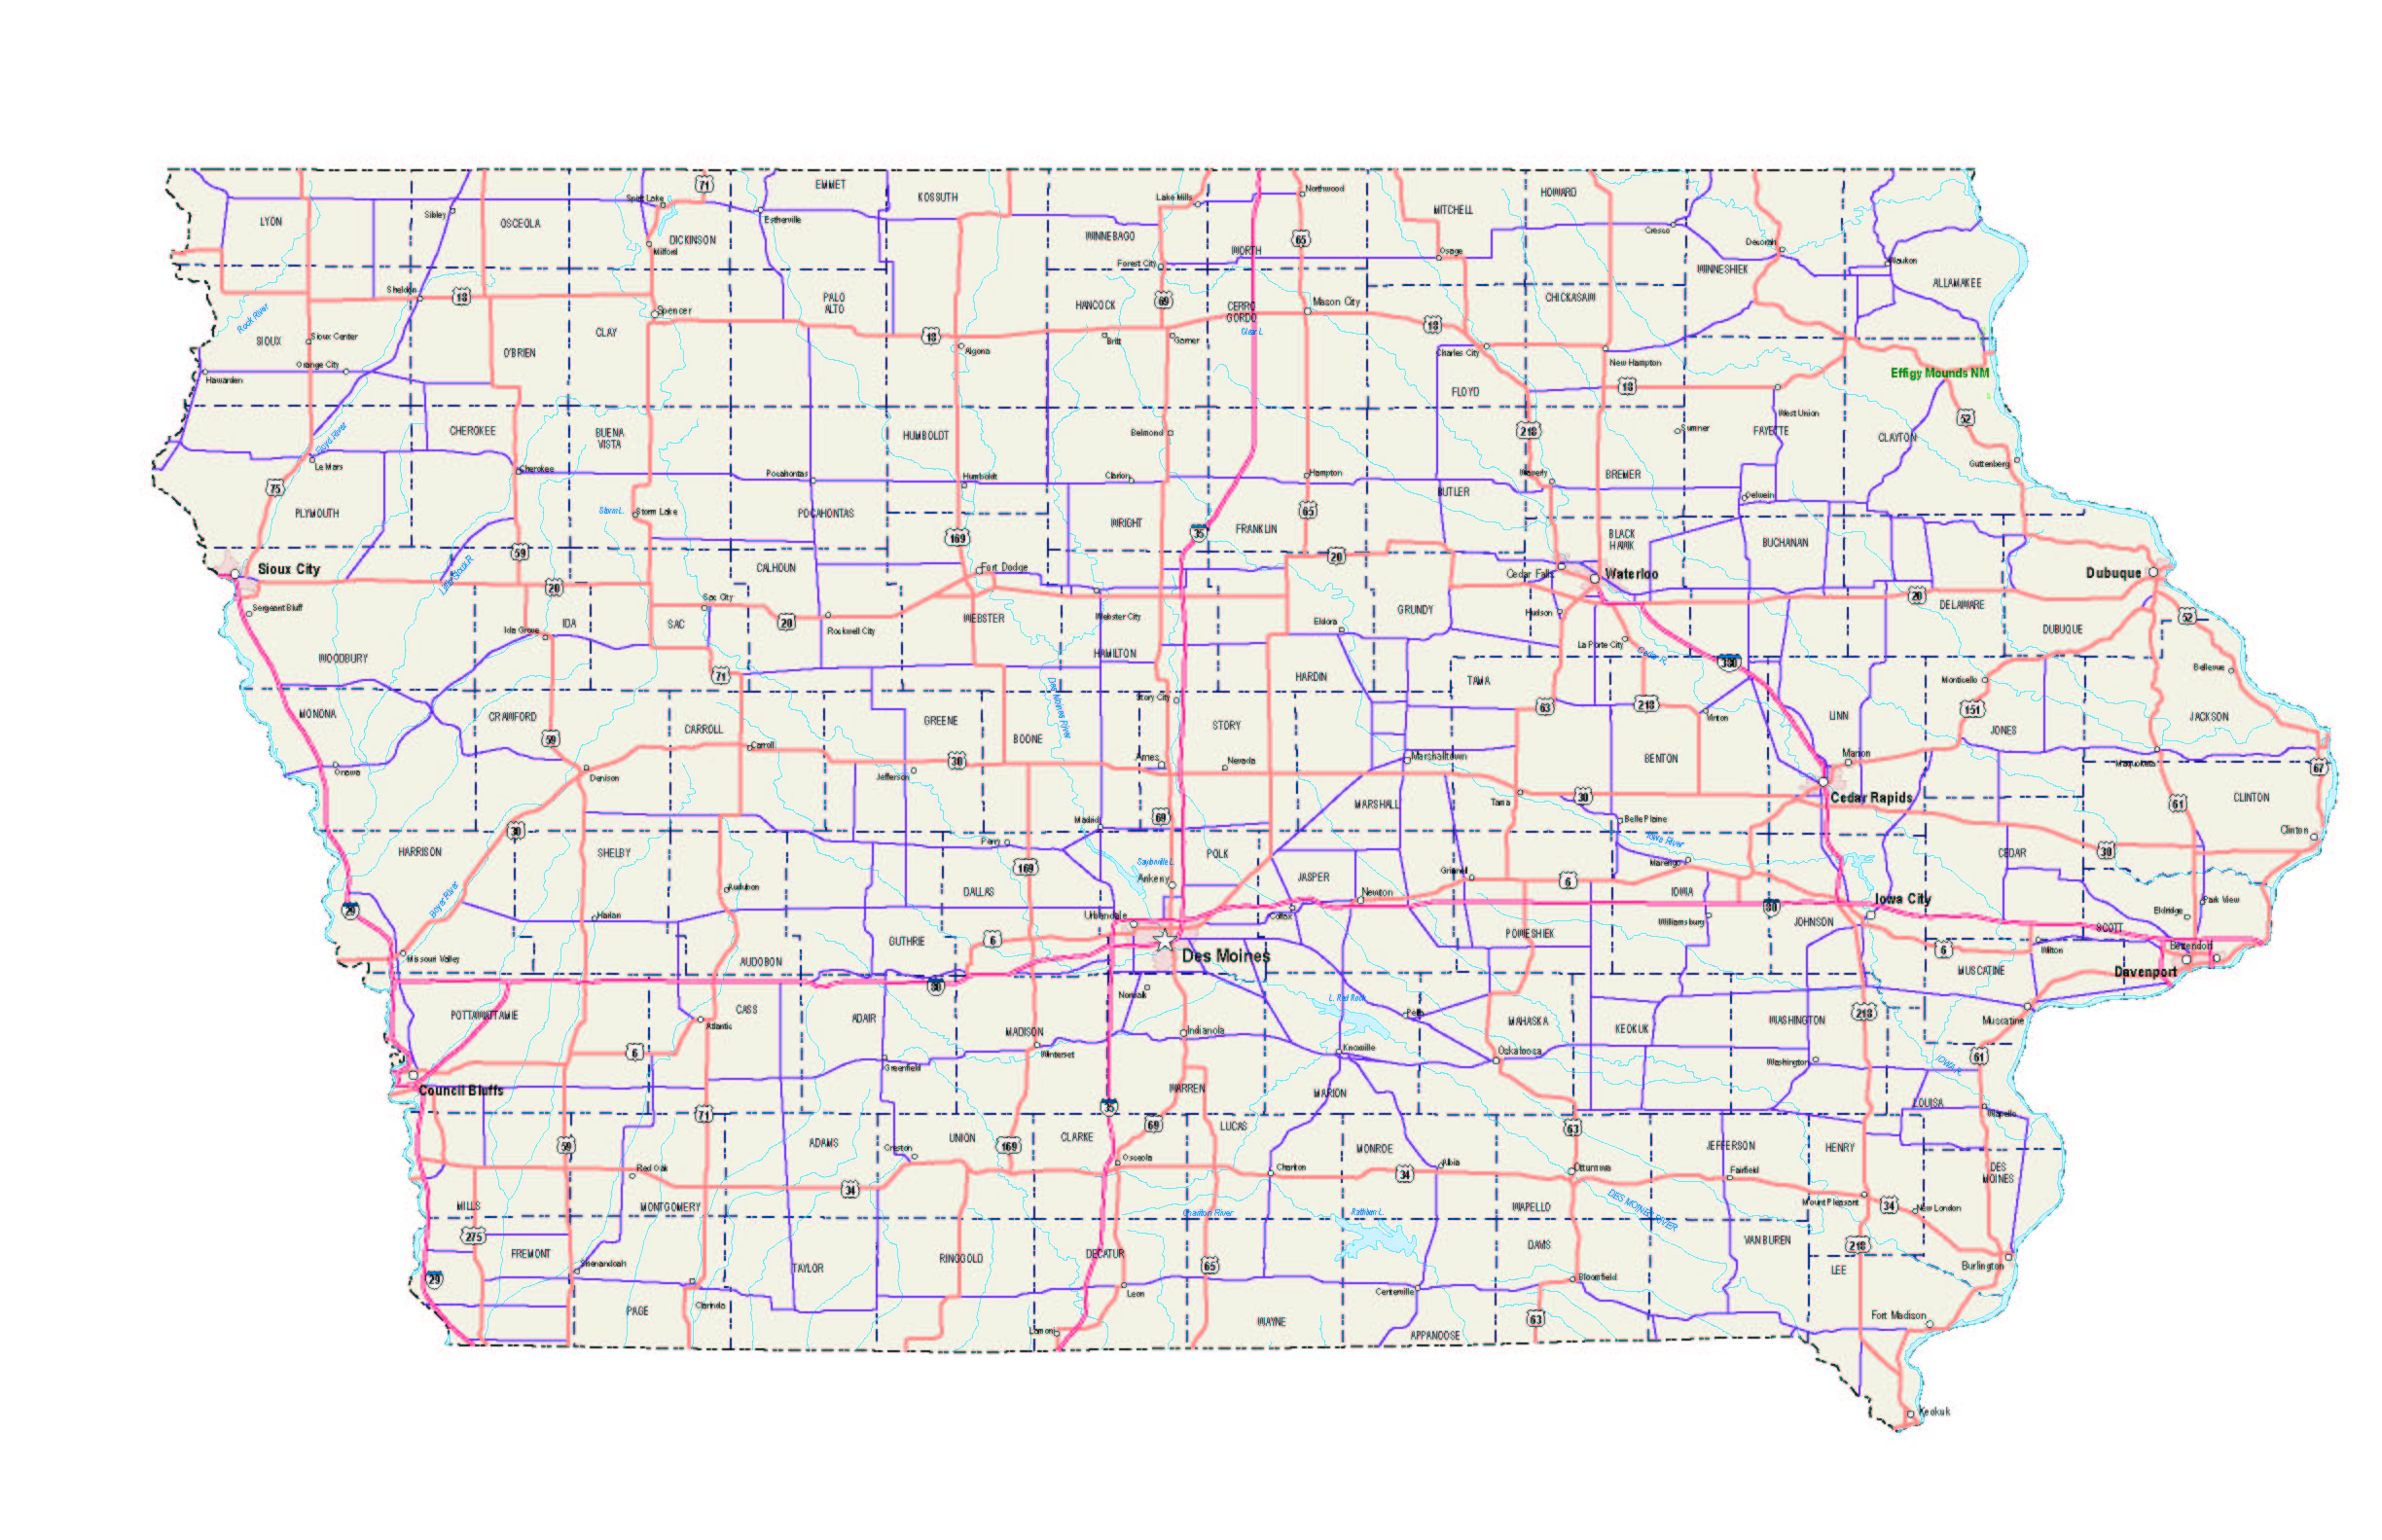 Iowa Maps Iowa Map Iowa Road Map Iowa State Map - Iowa map us